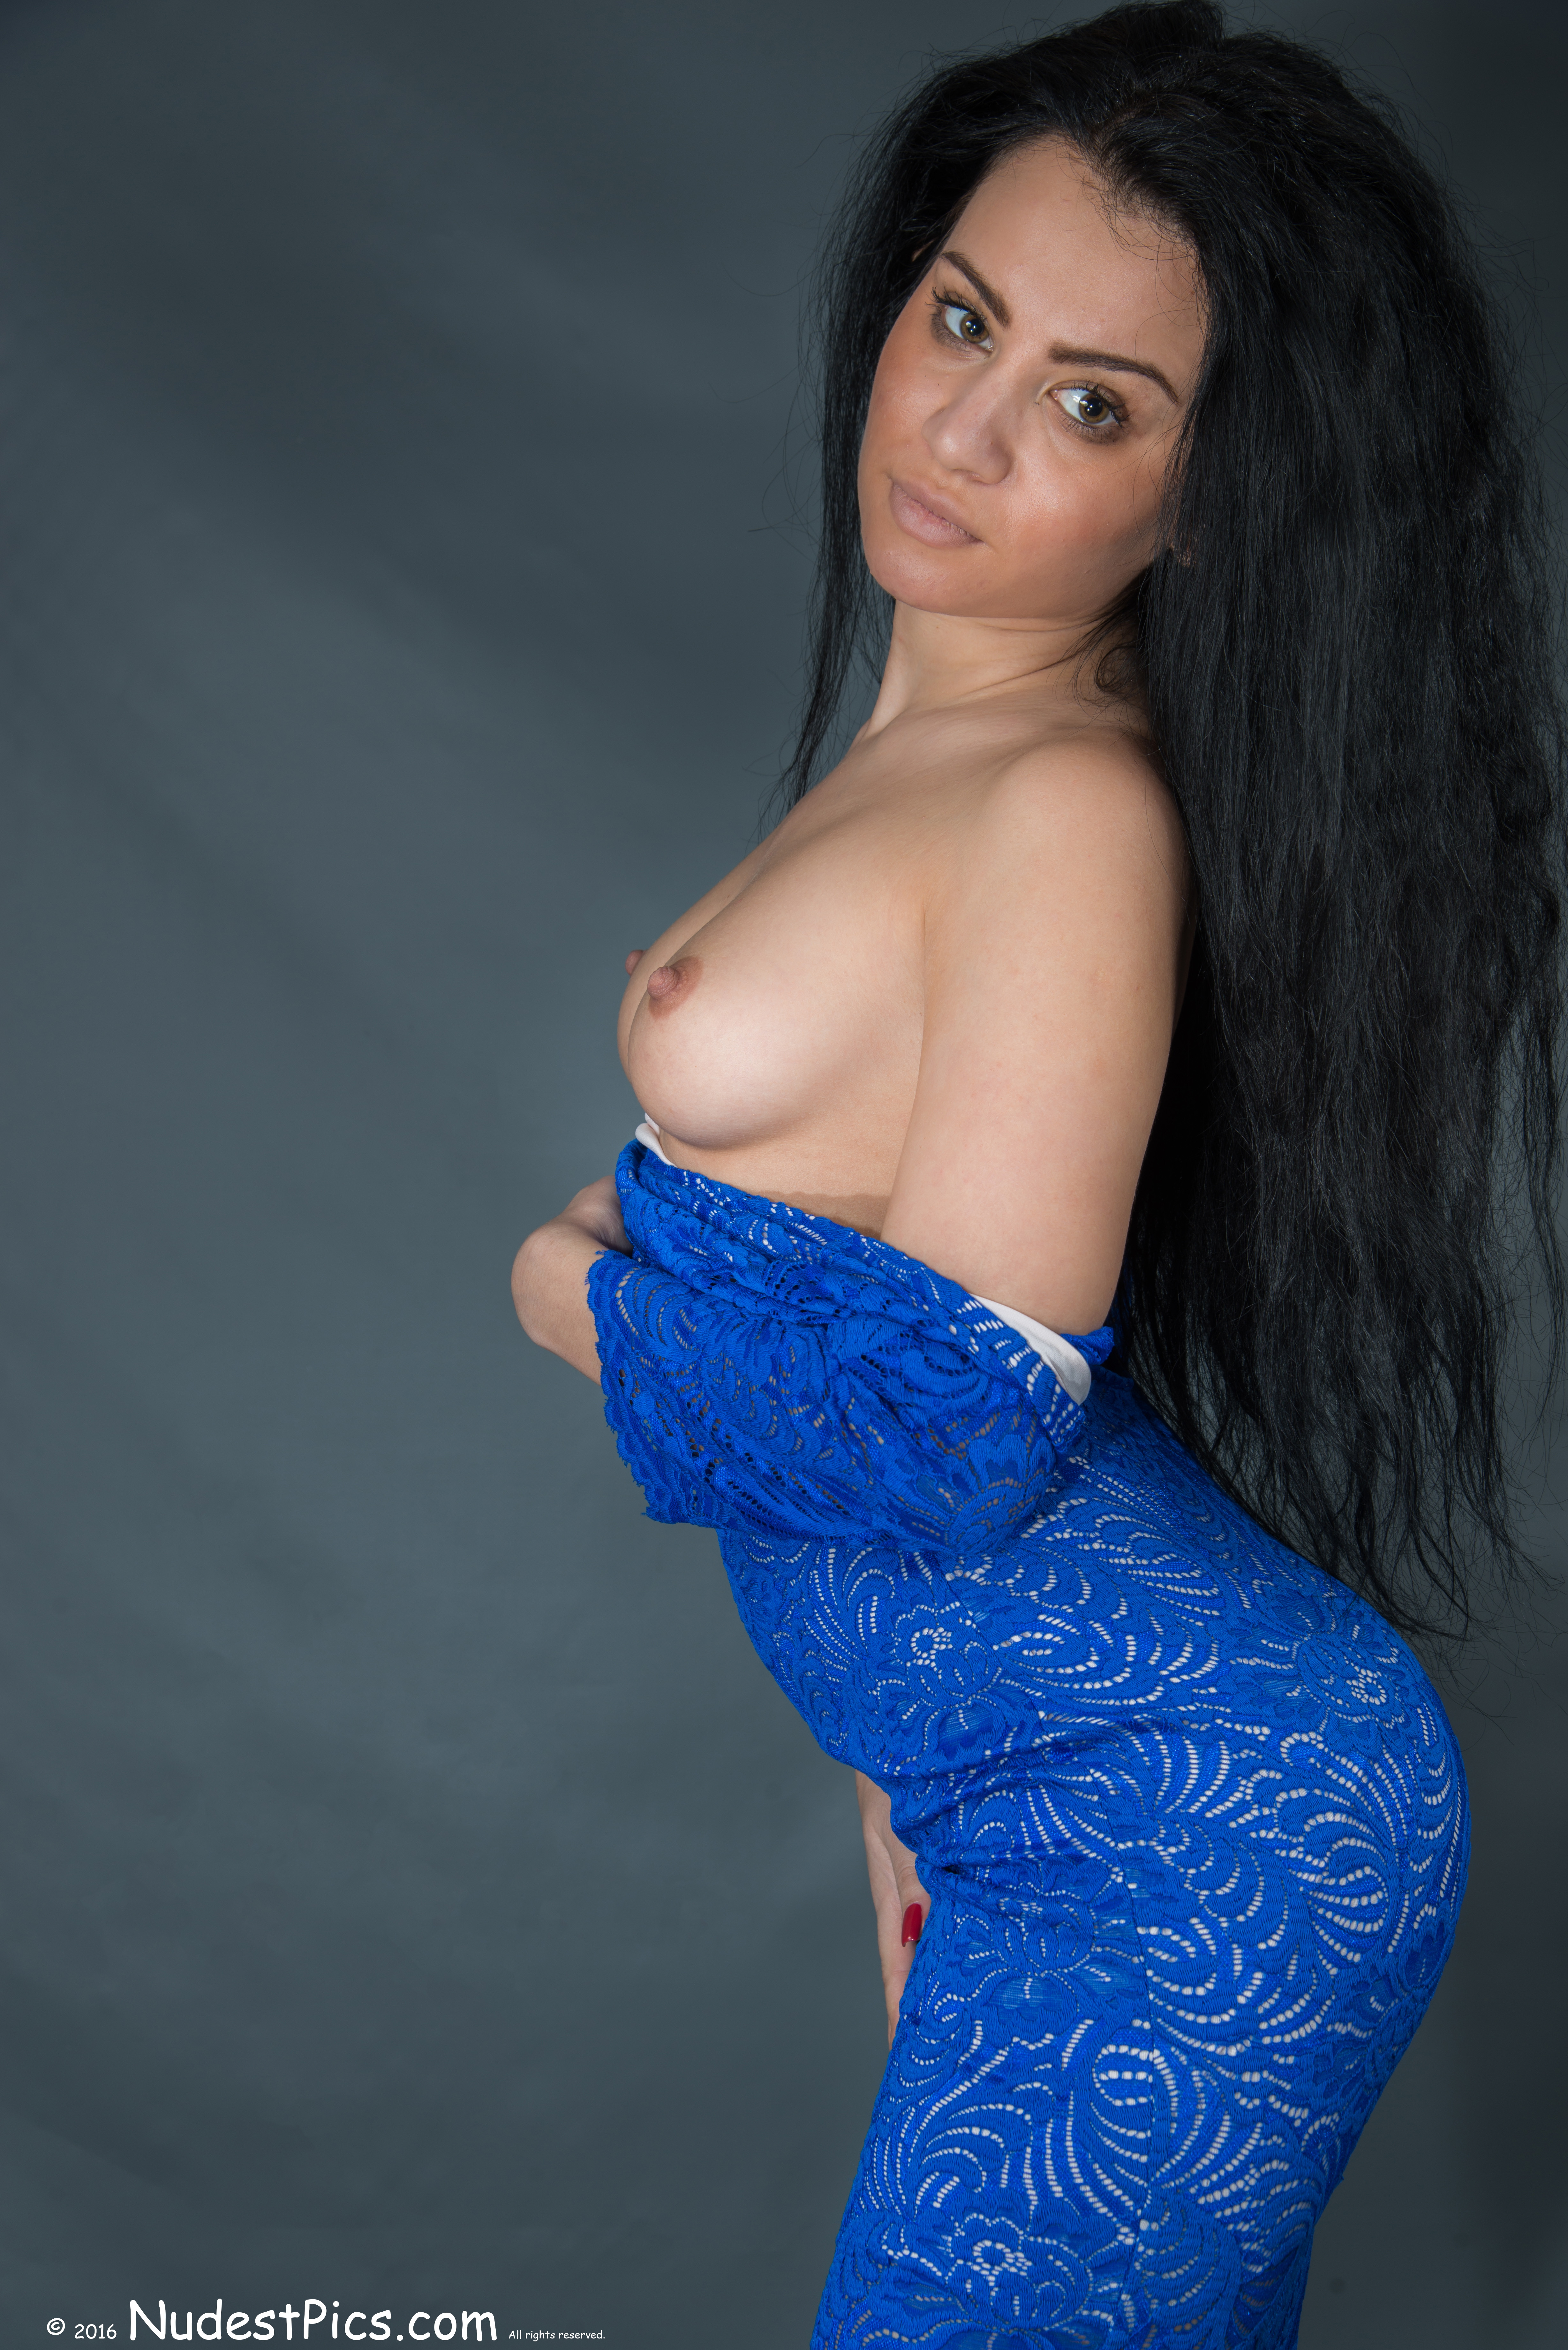 Long Haired American Latina Brunette Exposing Breasts